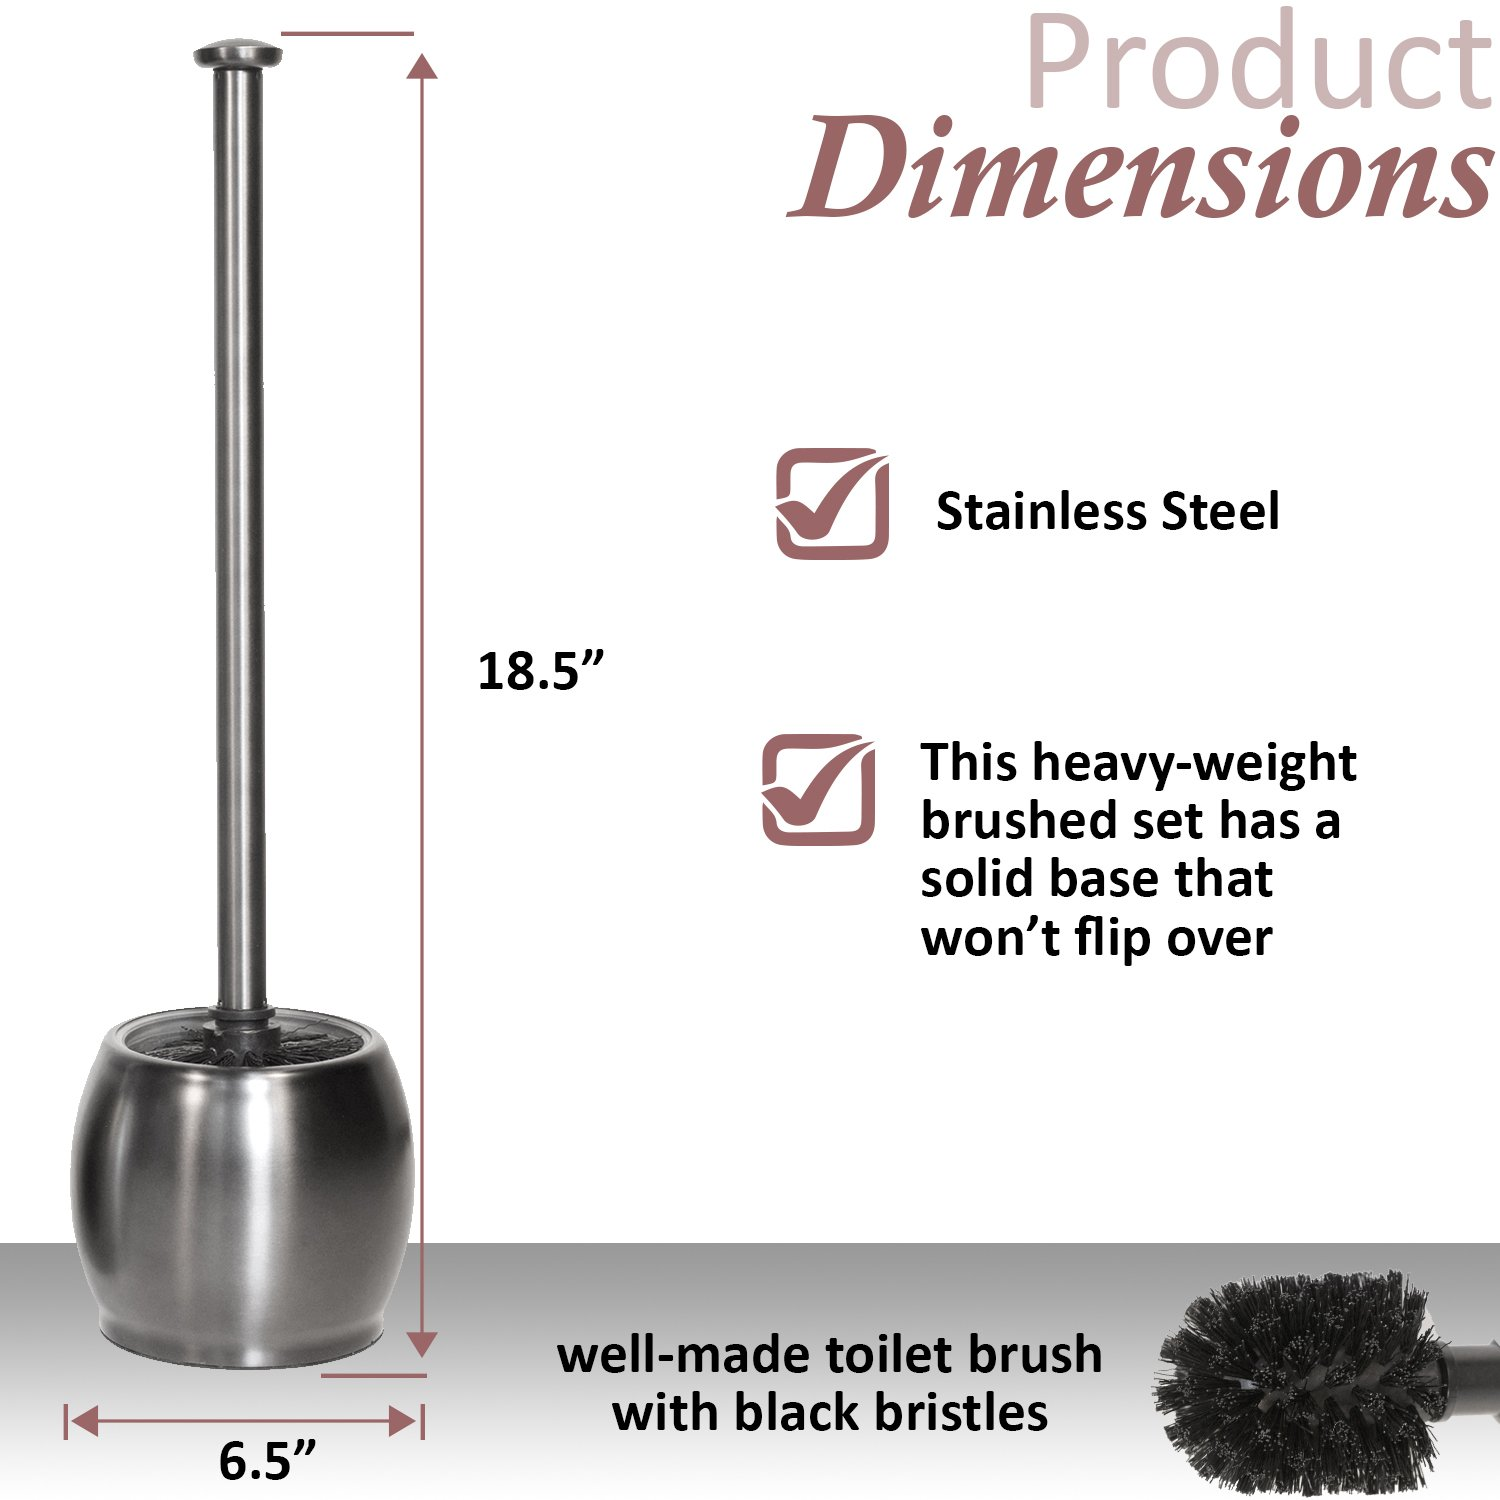 "Toilet Tree Modern Deluxe Freestanding Cleaning Tools Stainless Steel, Toilet Brush 6.5/"" x 6.5/"" x 18.5/"" ToiletTree Products"